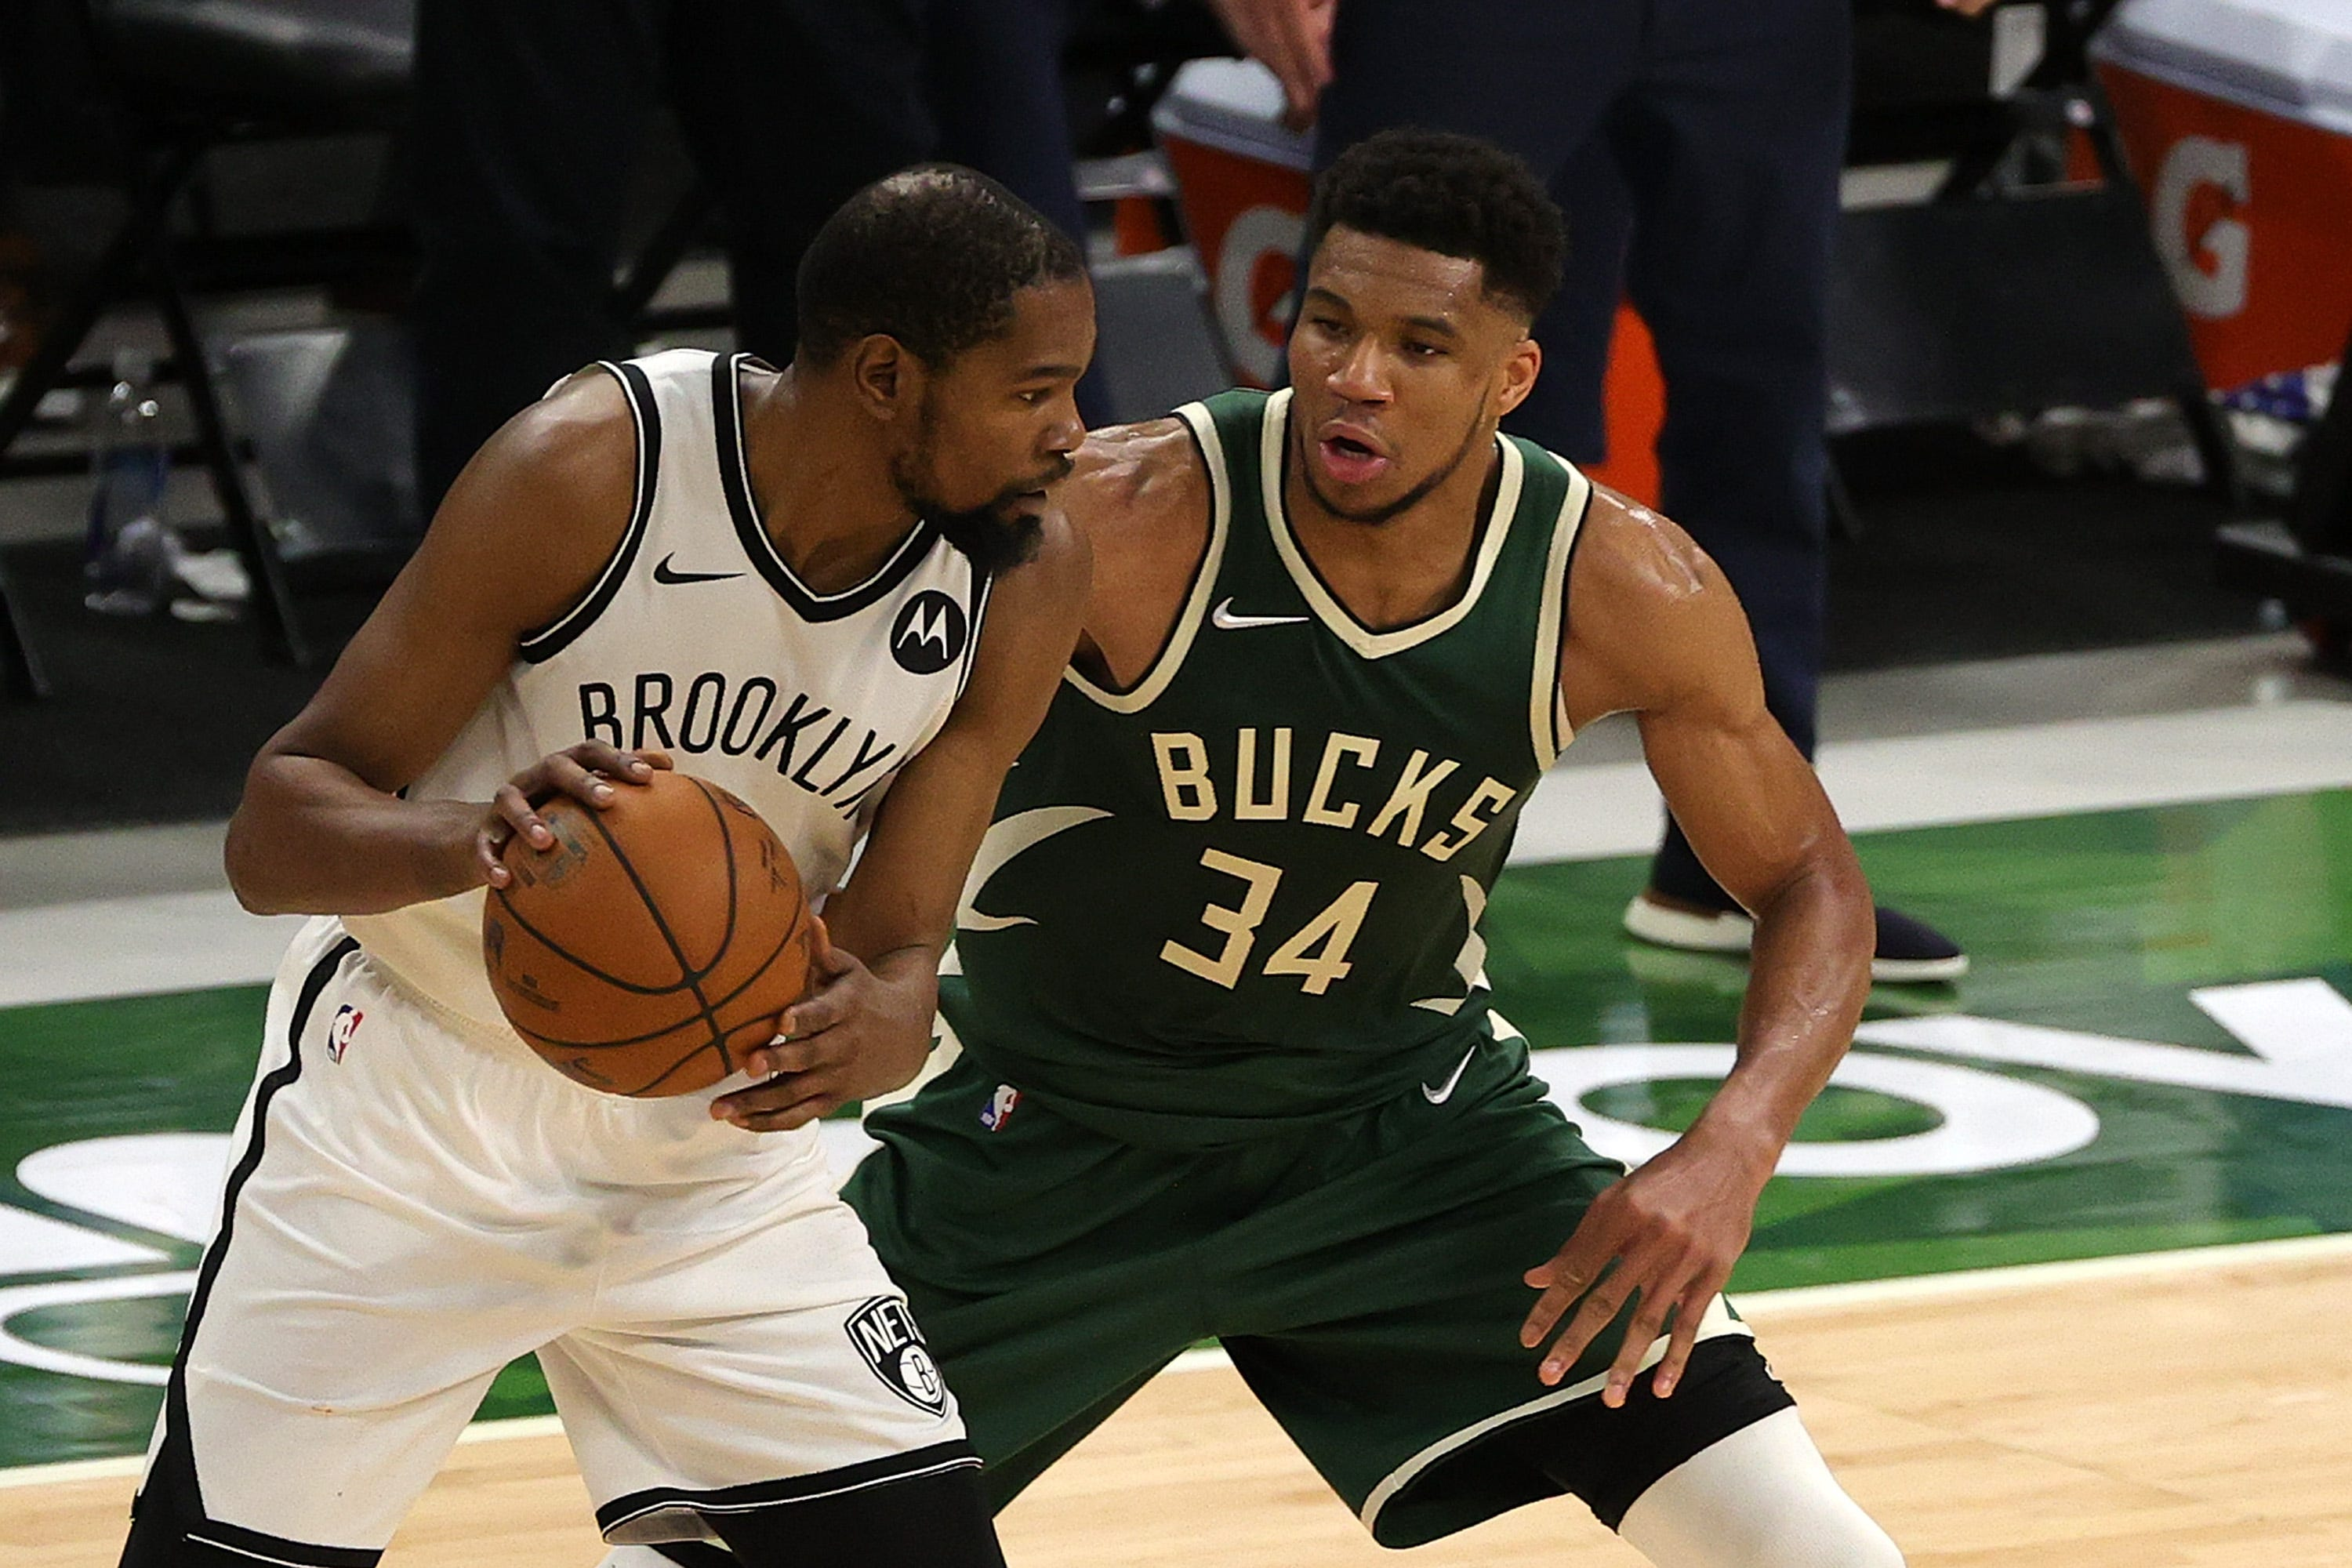 Do the Bucks have enough defenders to guard the Nets' Big 3?